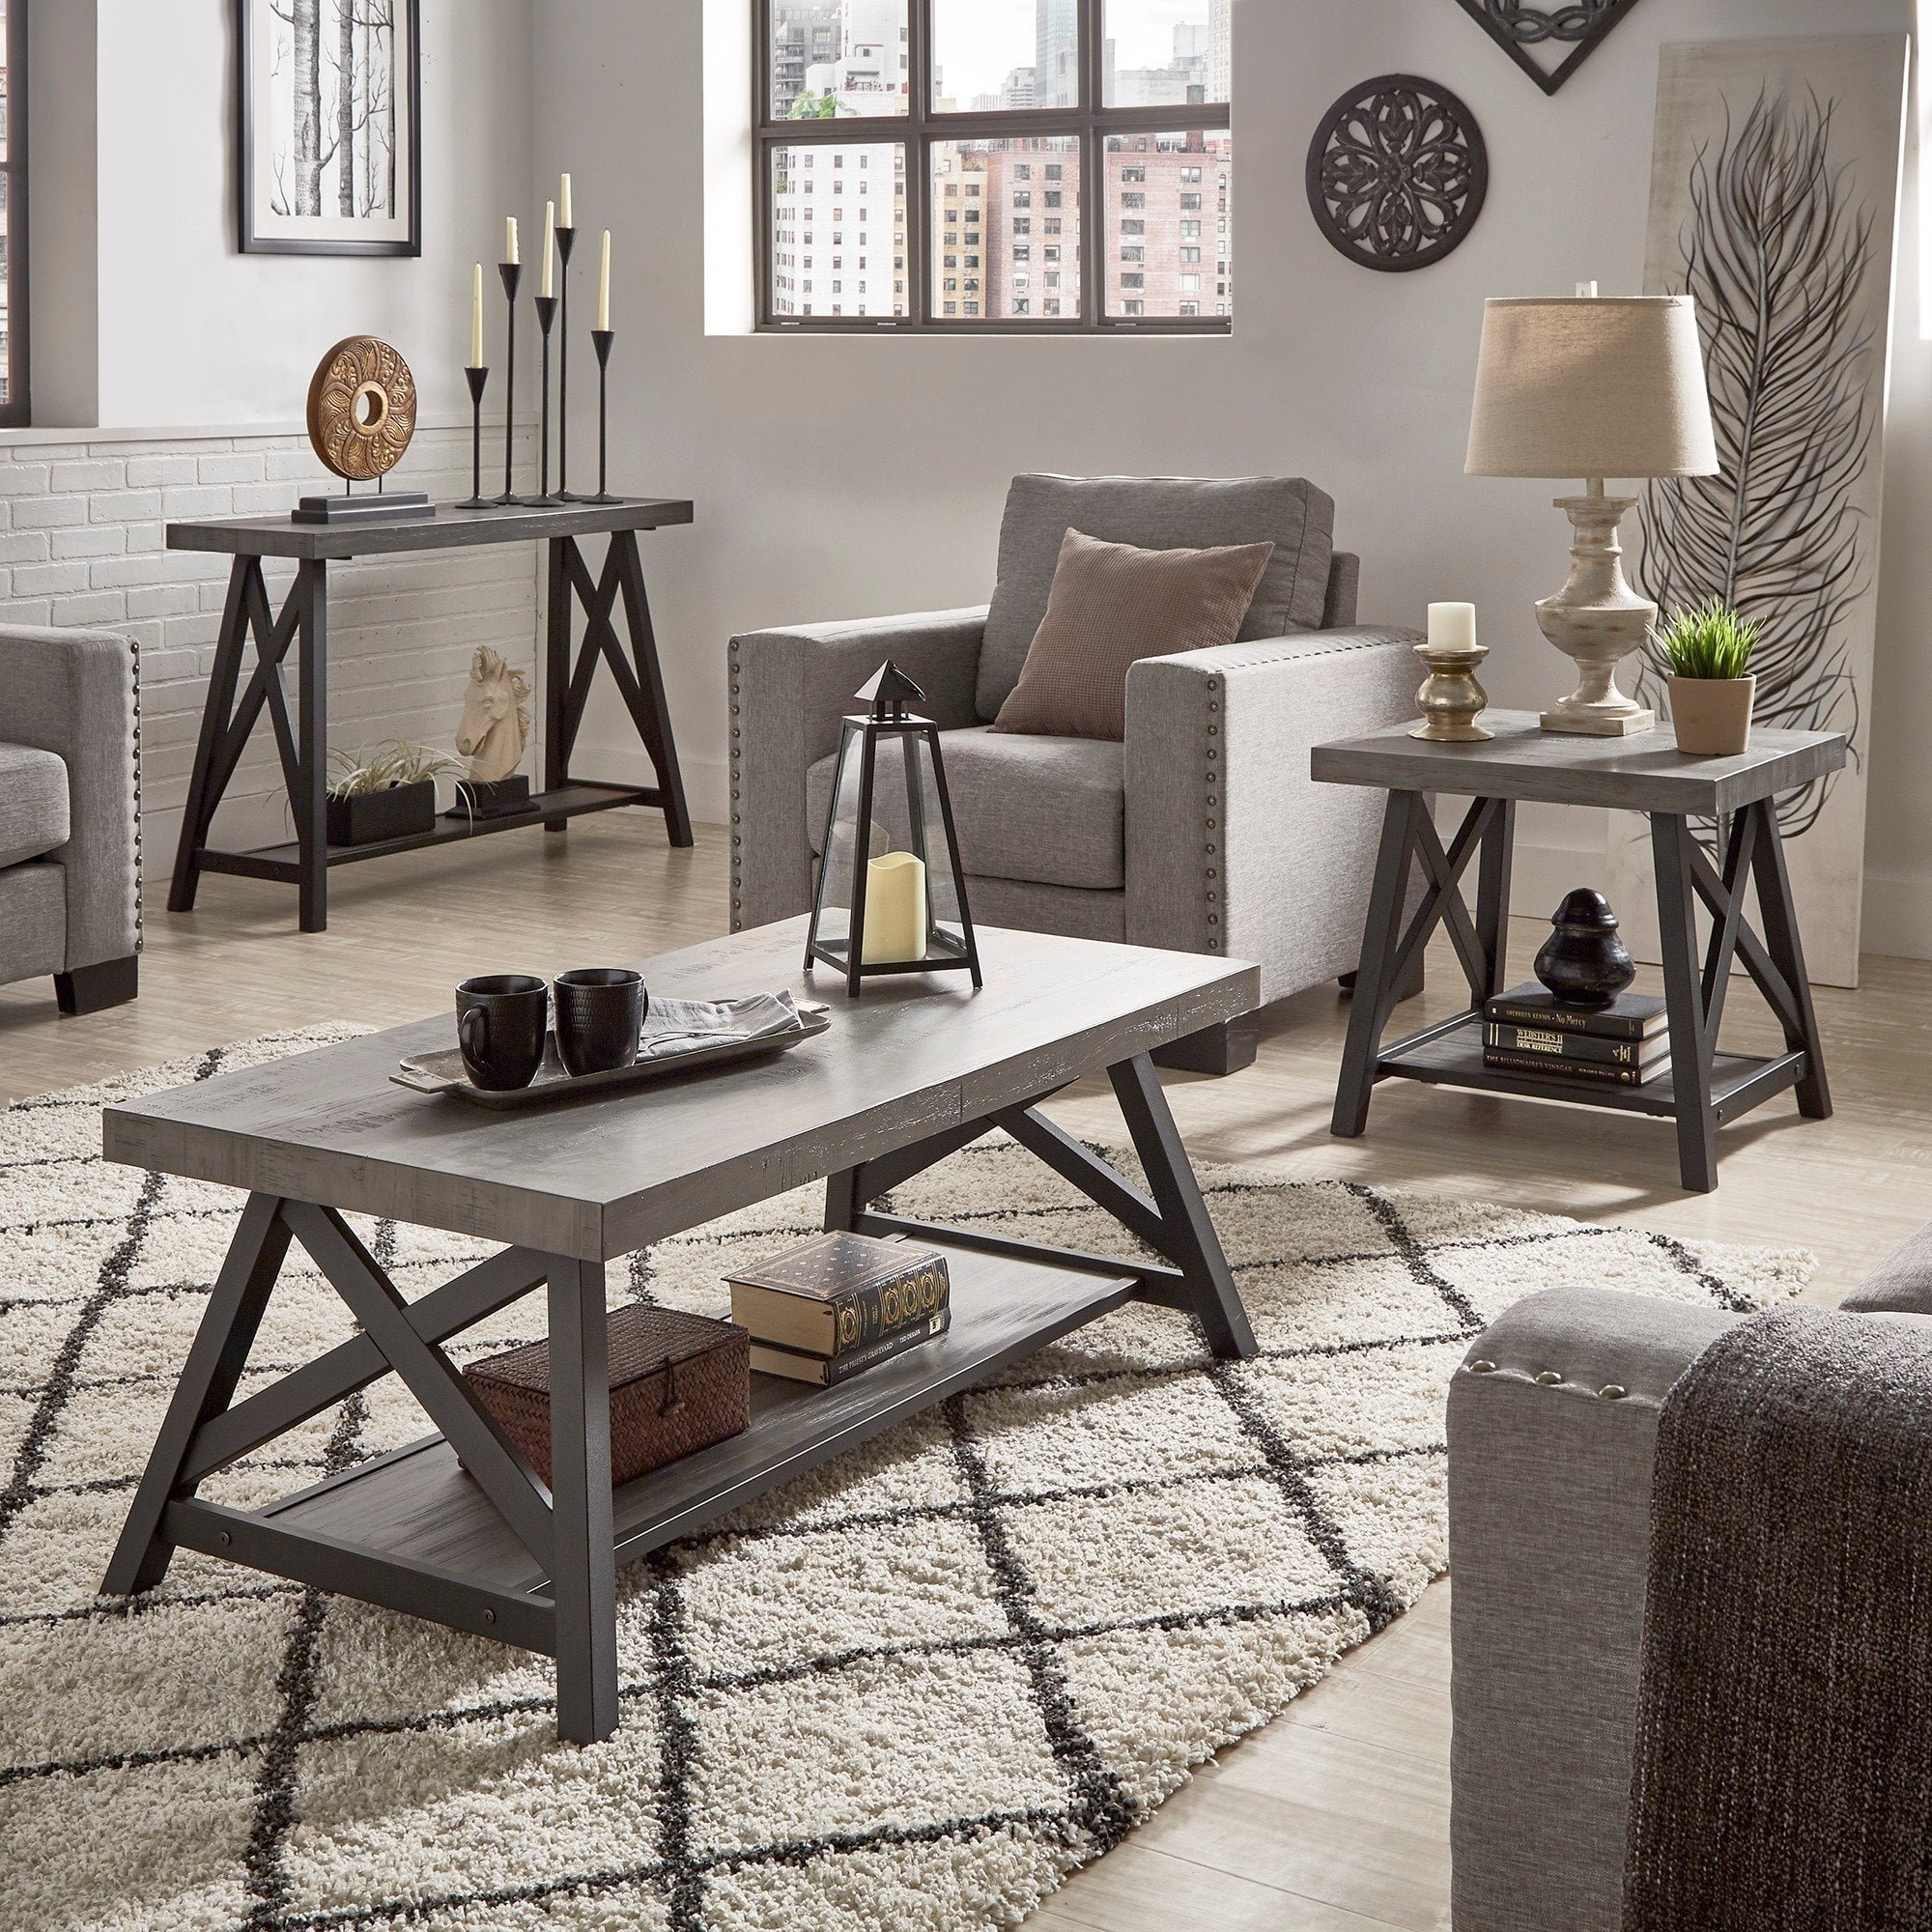 bryson rustic base accent tables inspire classic table mosaic garden bench windham tall cabinet with drawer solid wood dining cloth wall clock upcycled round distressed coffee